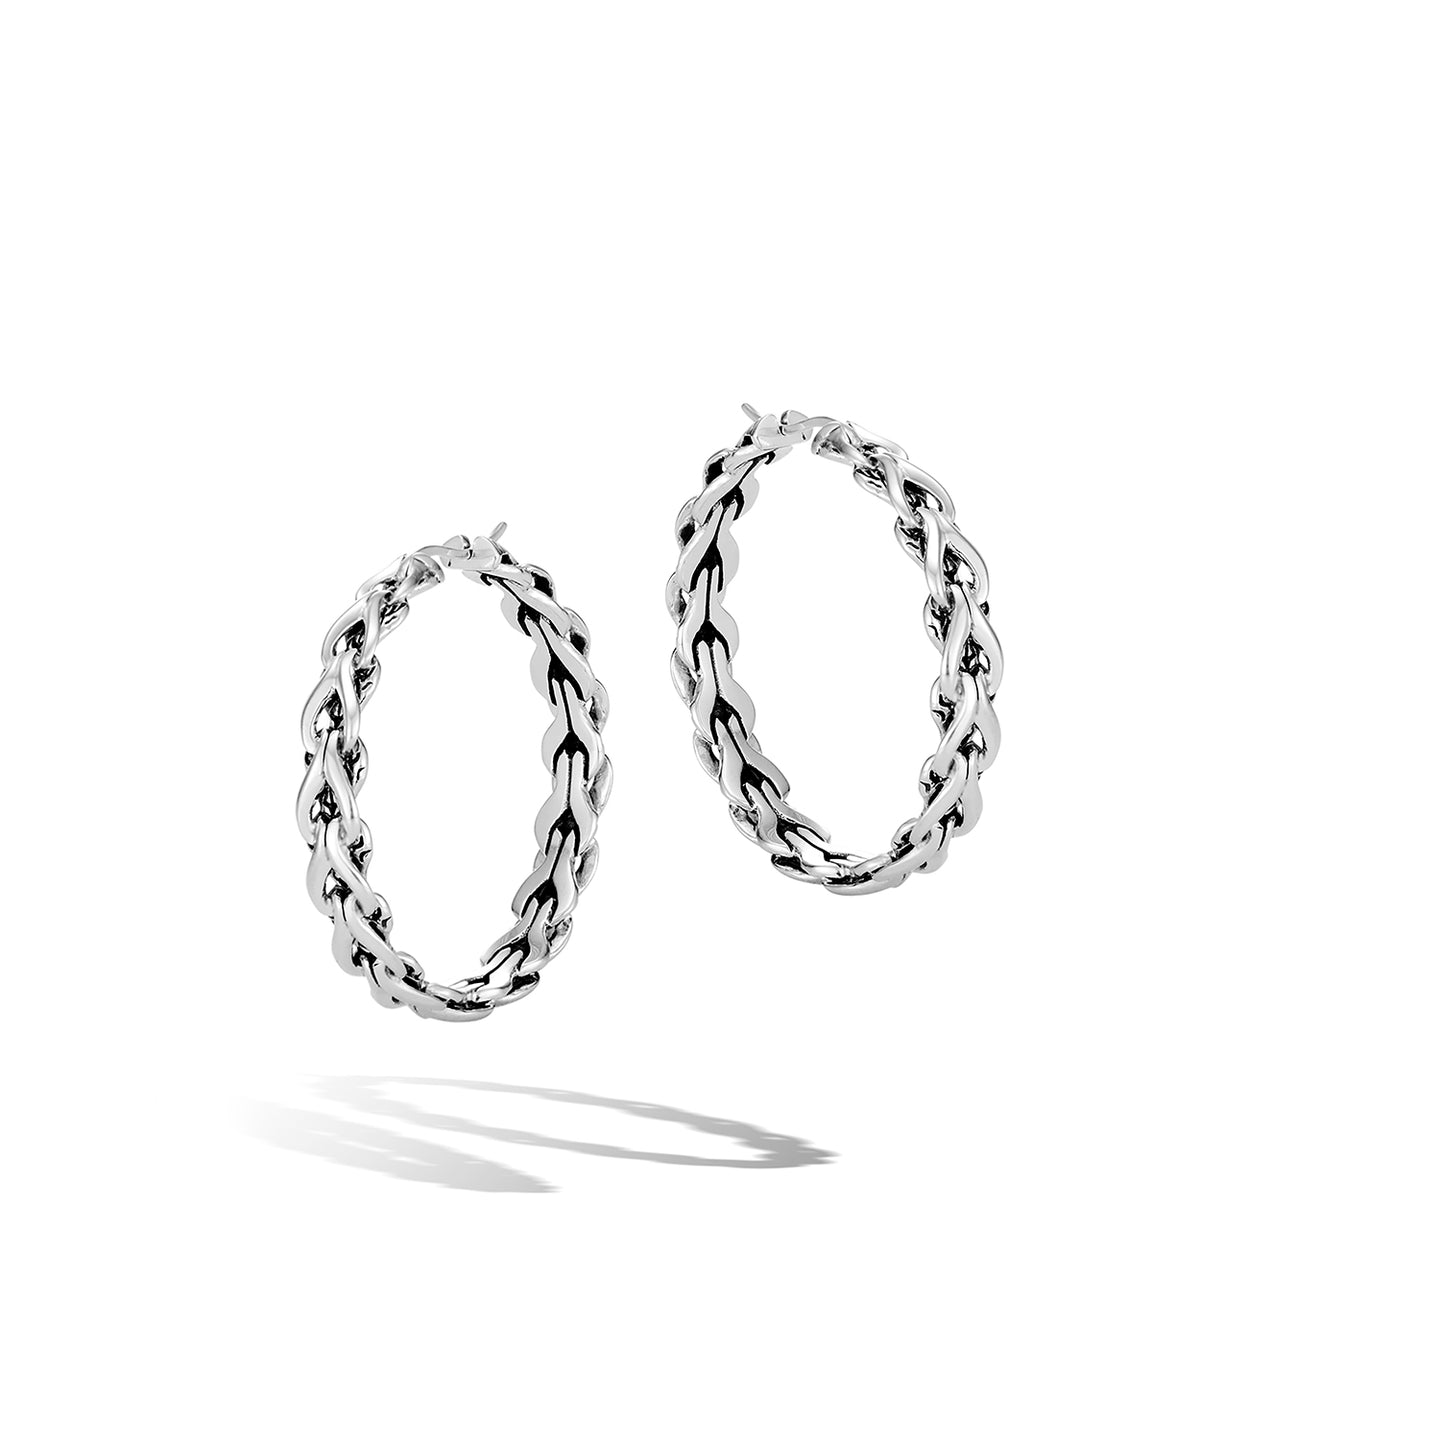 John Hardy Classic Chain Sterling Silver Asli Medium Hoop Earrings